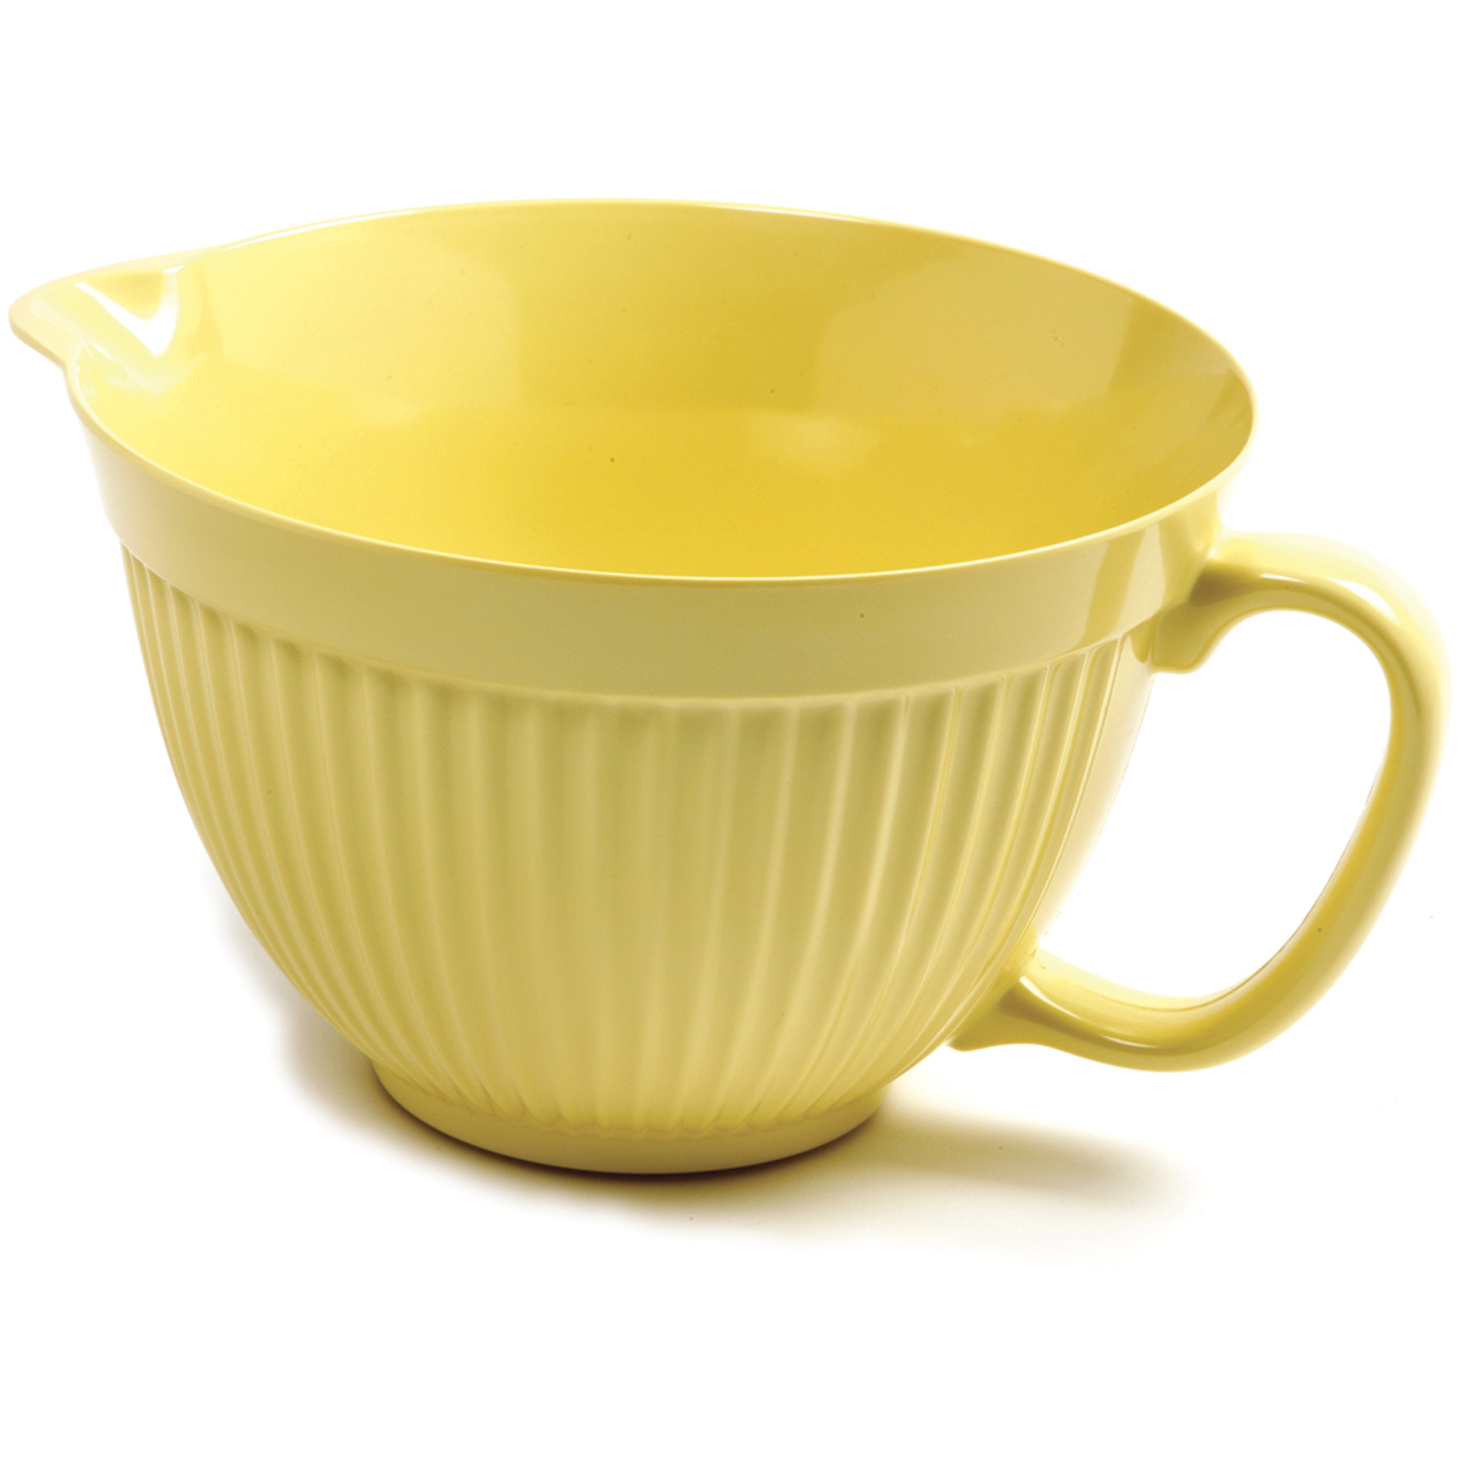 Norpro Grip-EZ Lemon Yellow Melamine Batter Mixing Bowl, 5 Quart